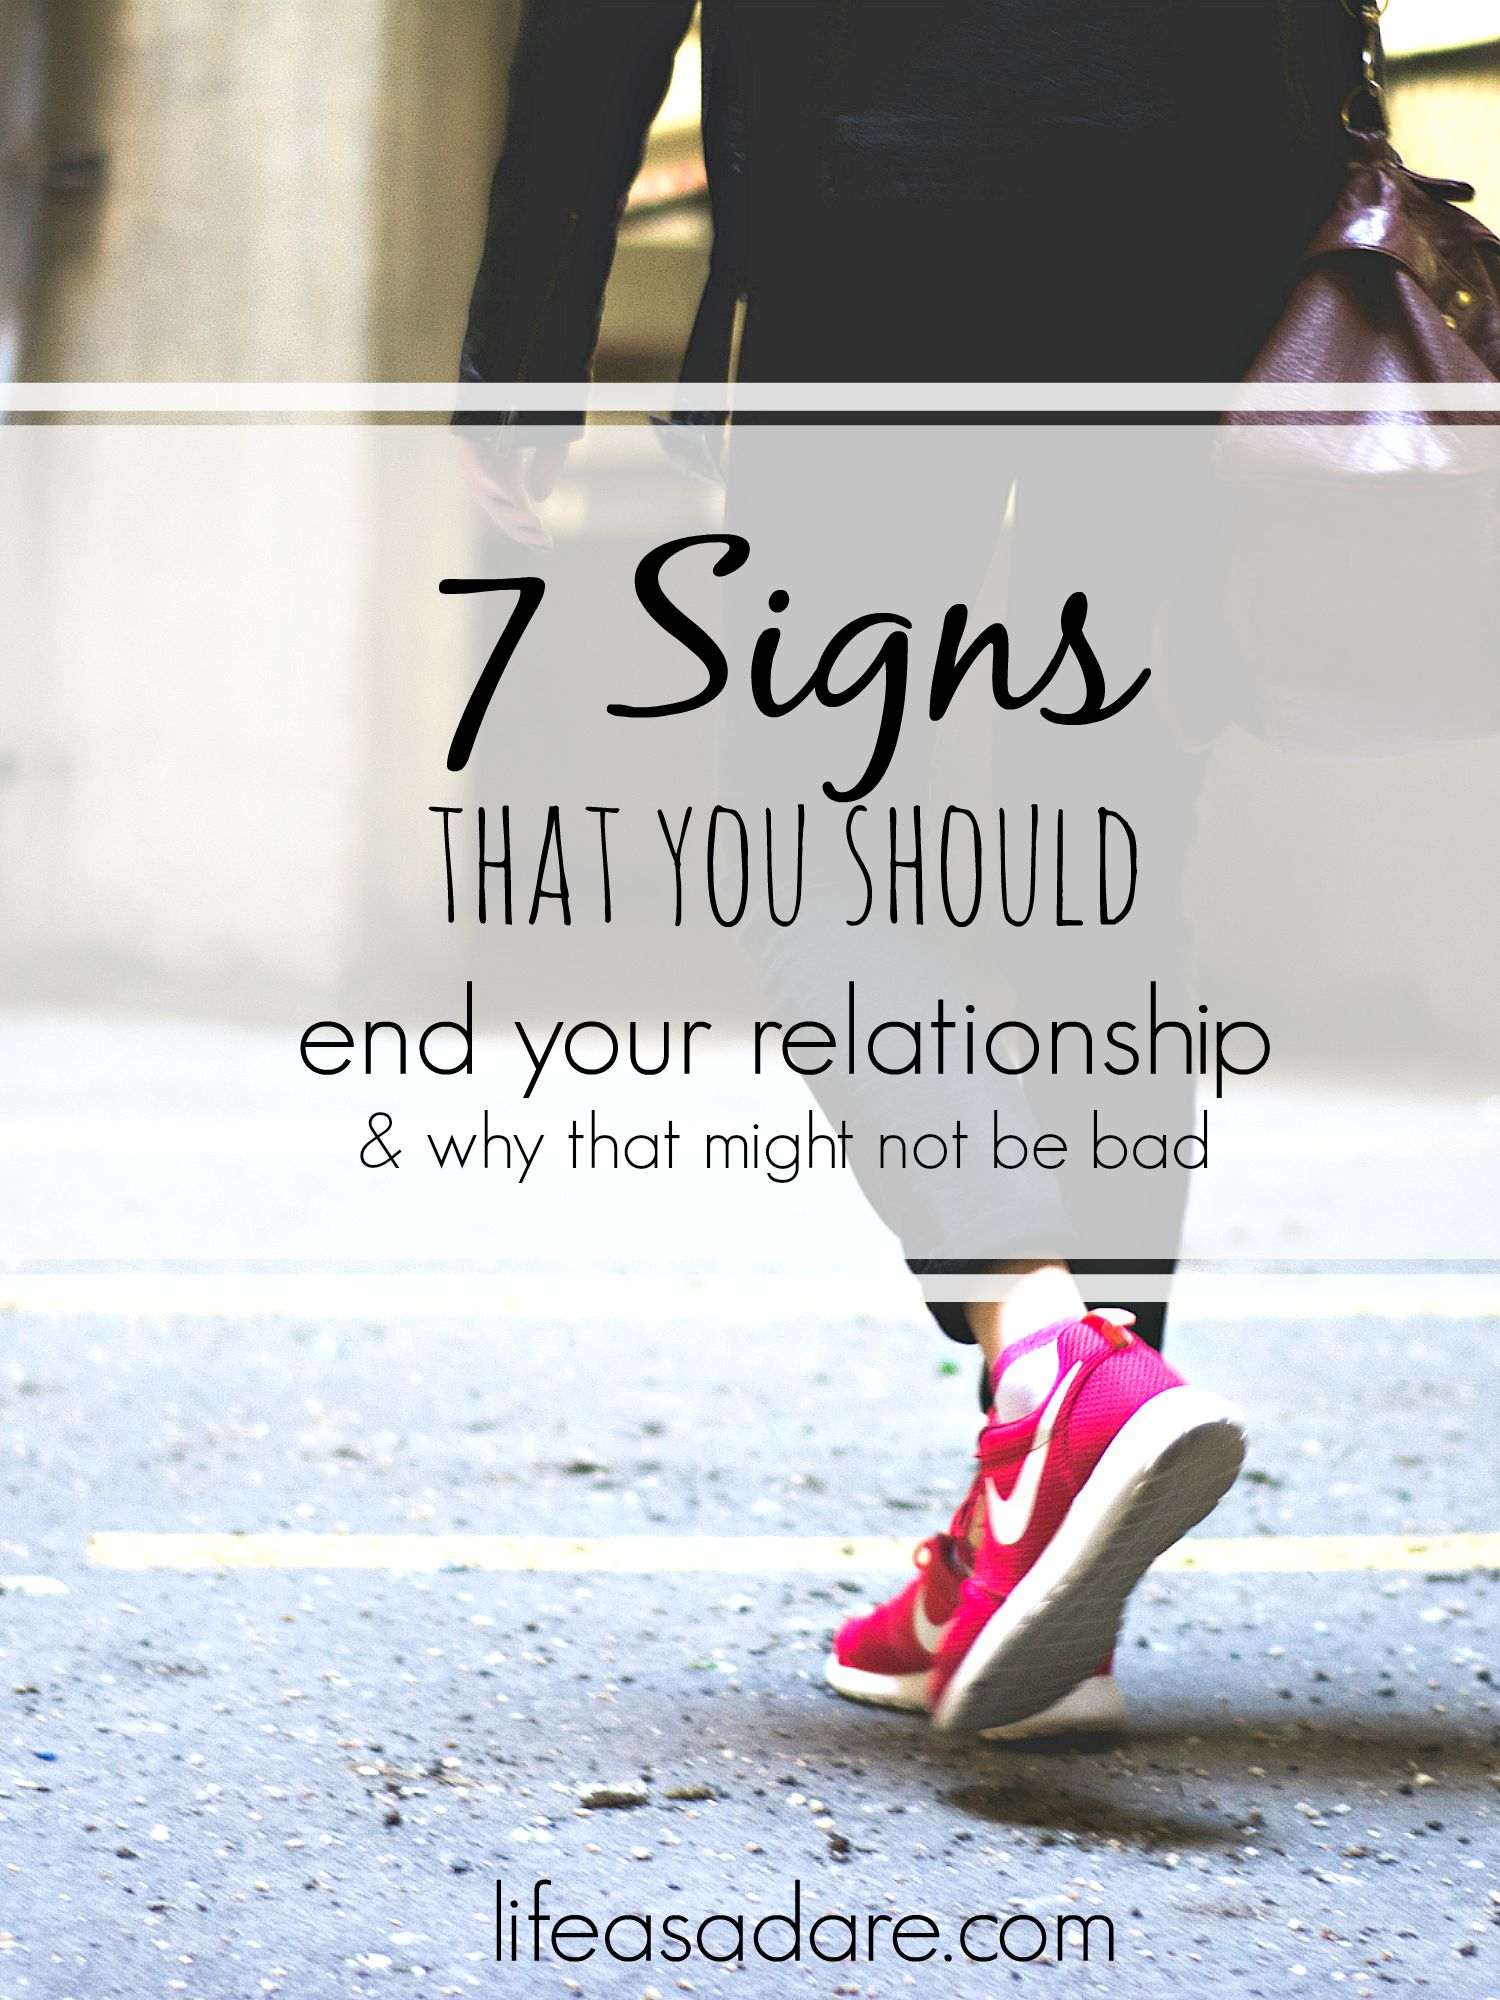 How do you tell when to leave a relationship? It can be so hard to decide when you're just in a slump and when this is actually a sign that it's over. Here are 7 signs to look for to figure out if the relationship should end.